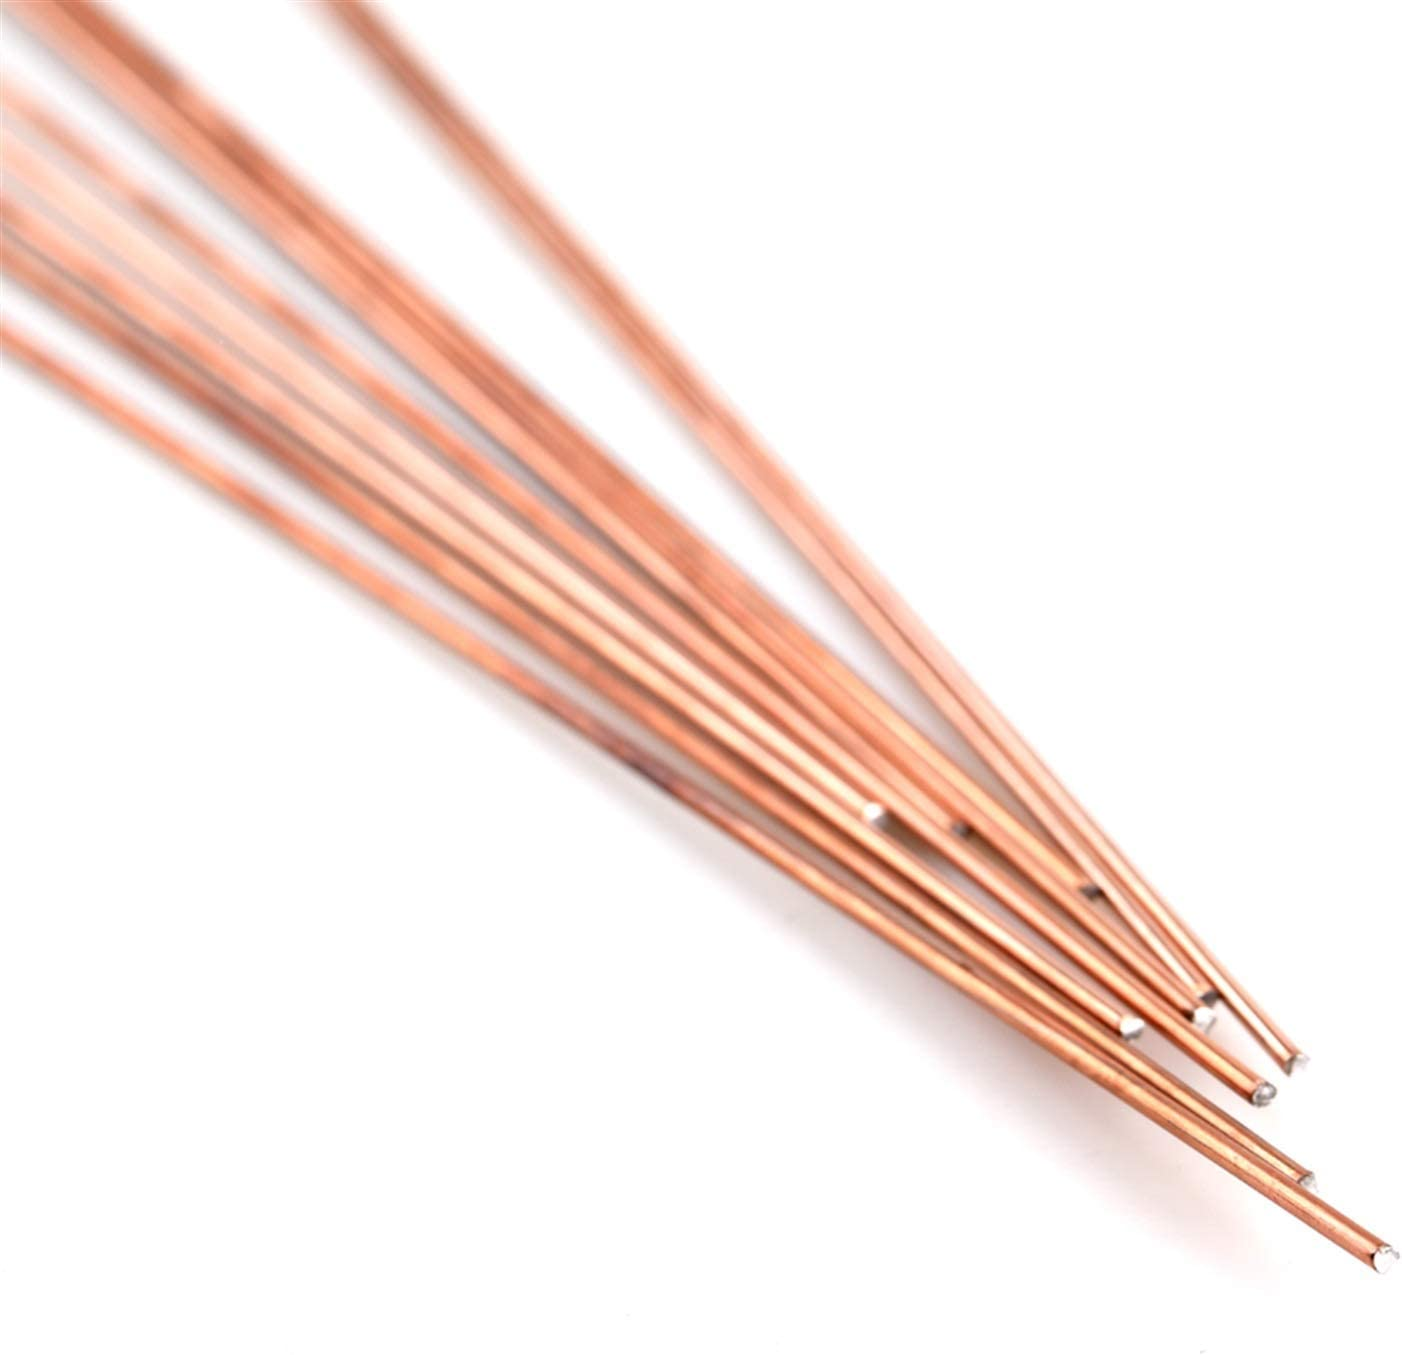 Yangg-Welding Rods Gorgeous Durable 70S-6 Electrode Wire Welding Solid Ultra-Cheap Deals